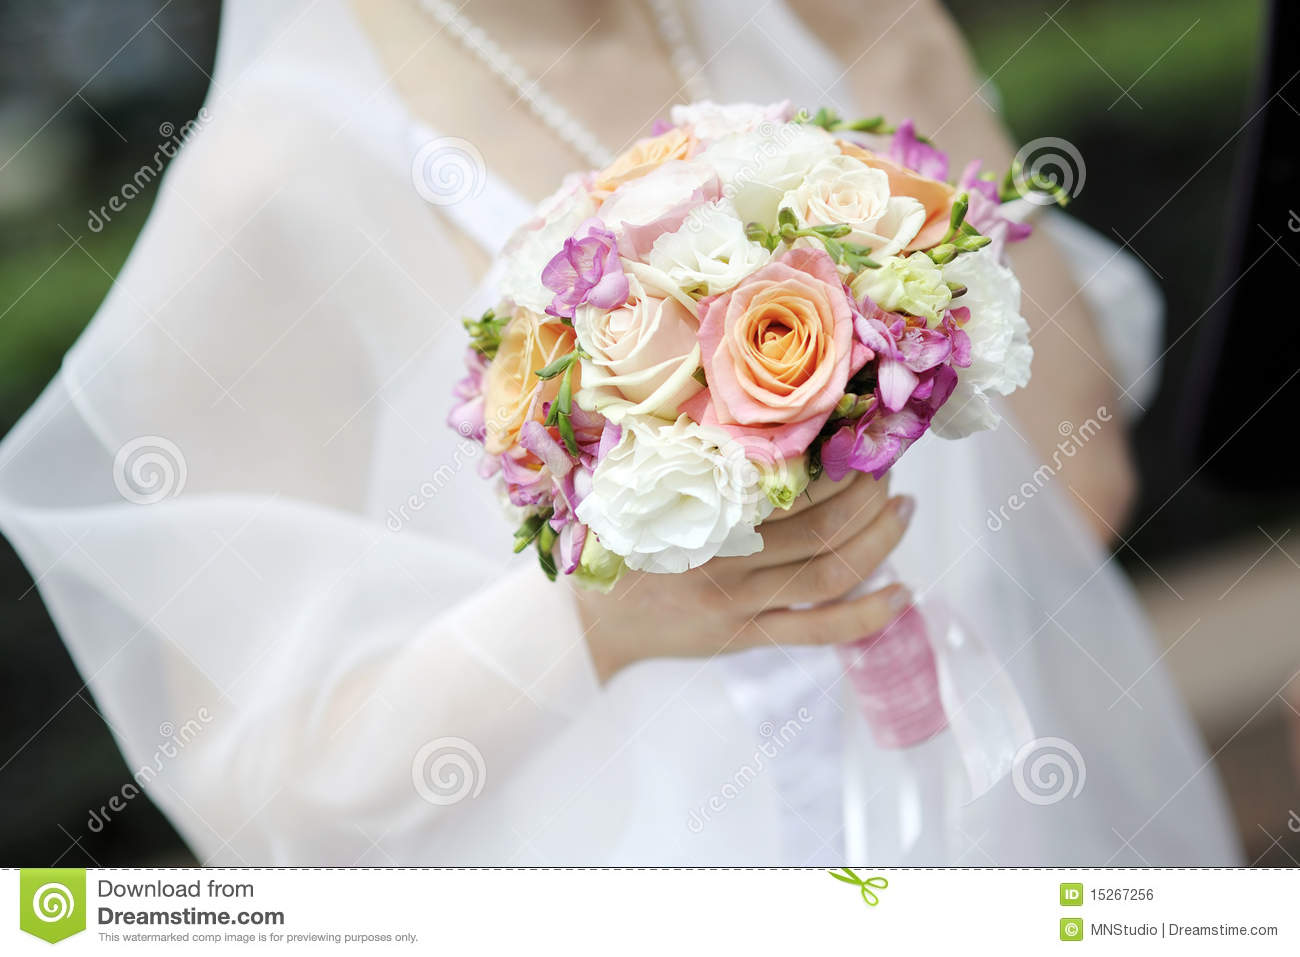 Bride Holding Beautiful Wedding Flowers Bouquet Royalty